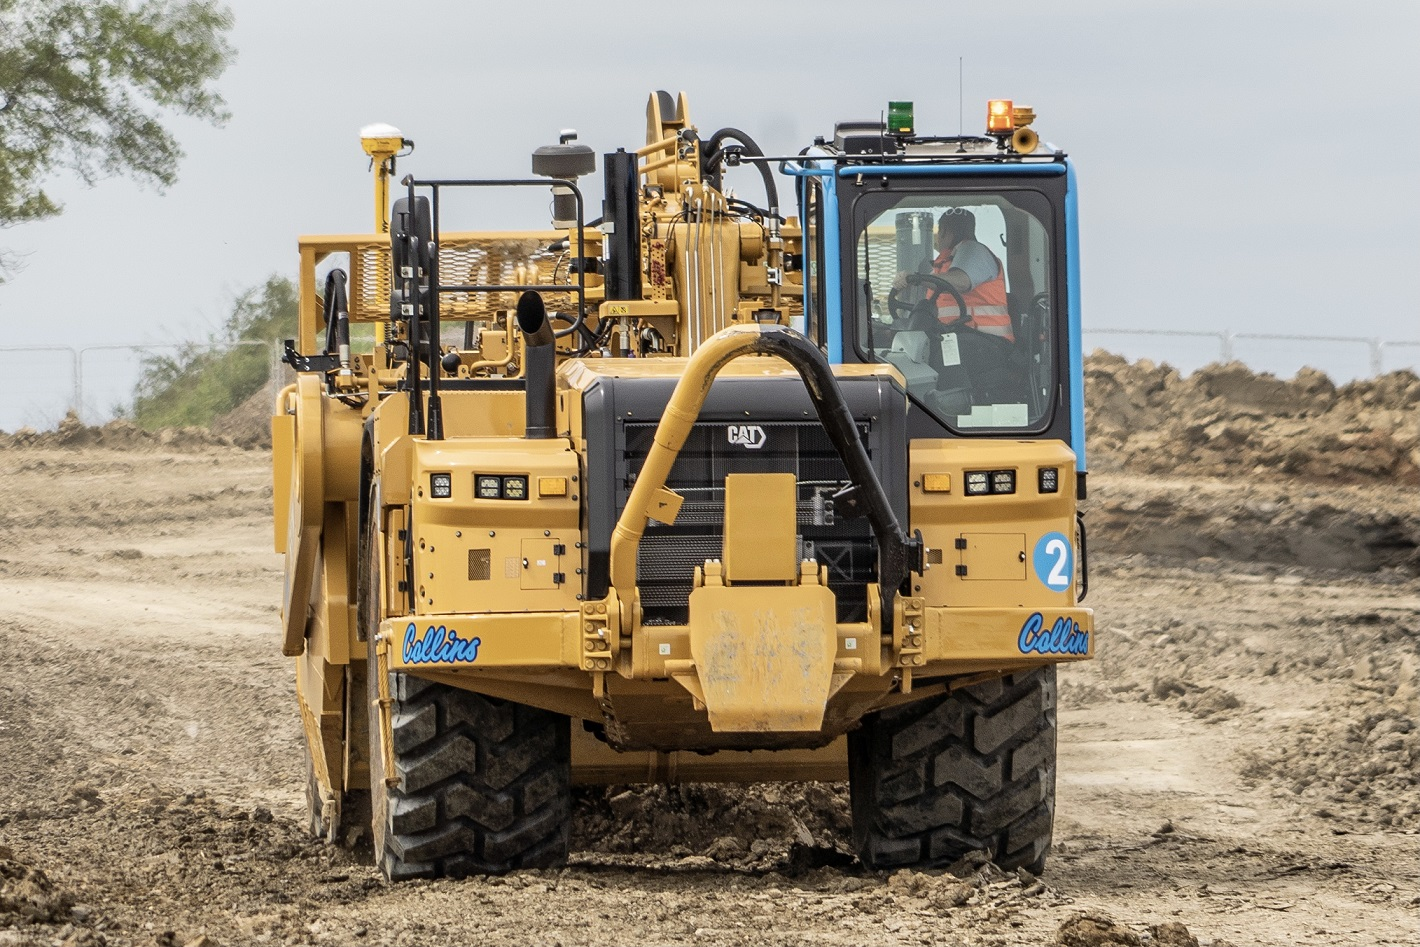 Collins Earthworks going back to old-school cool